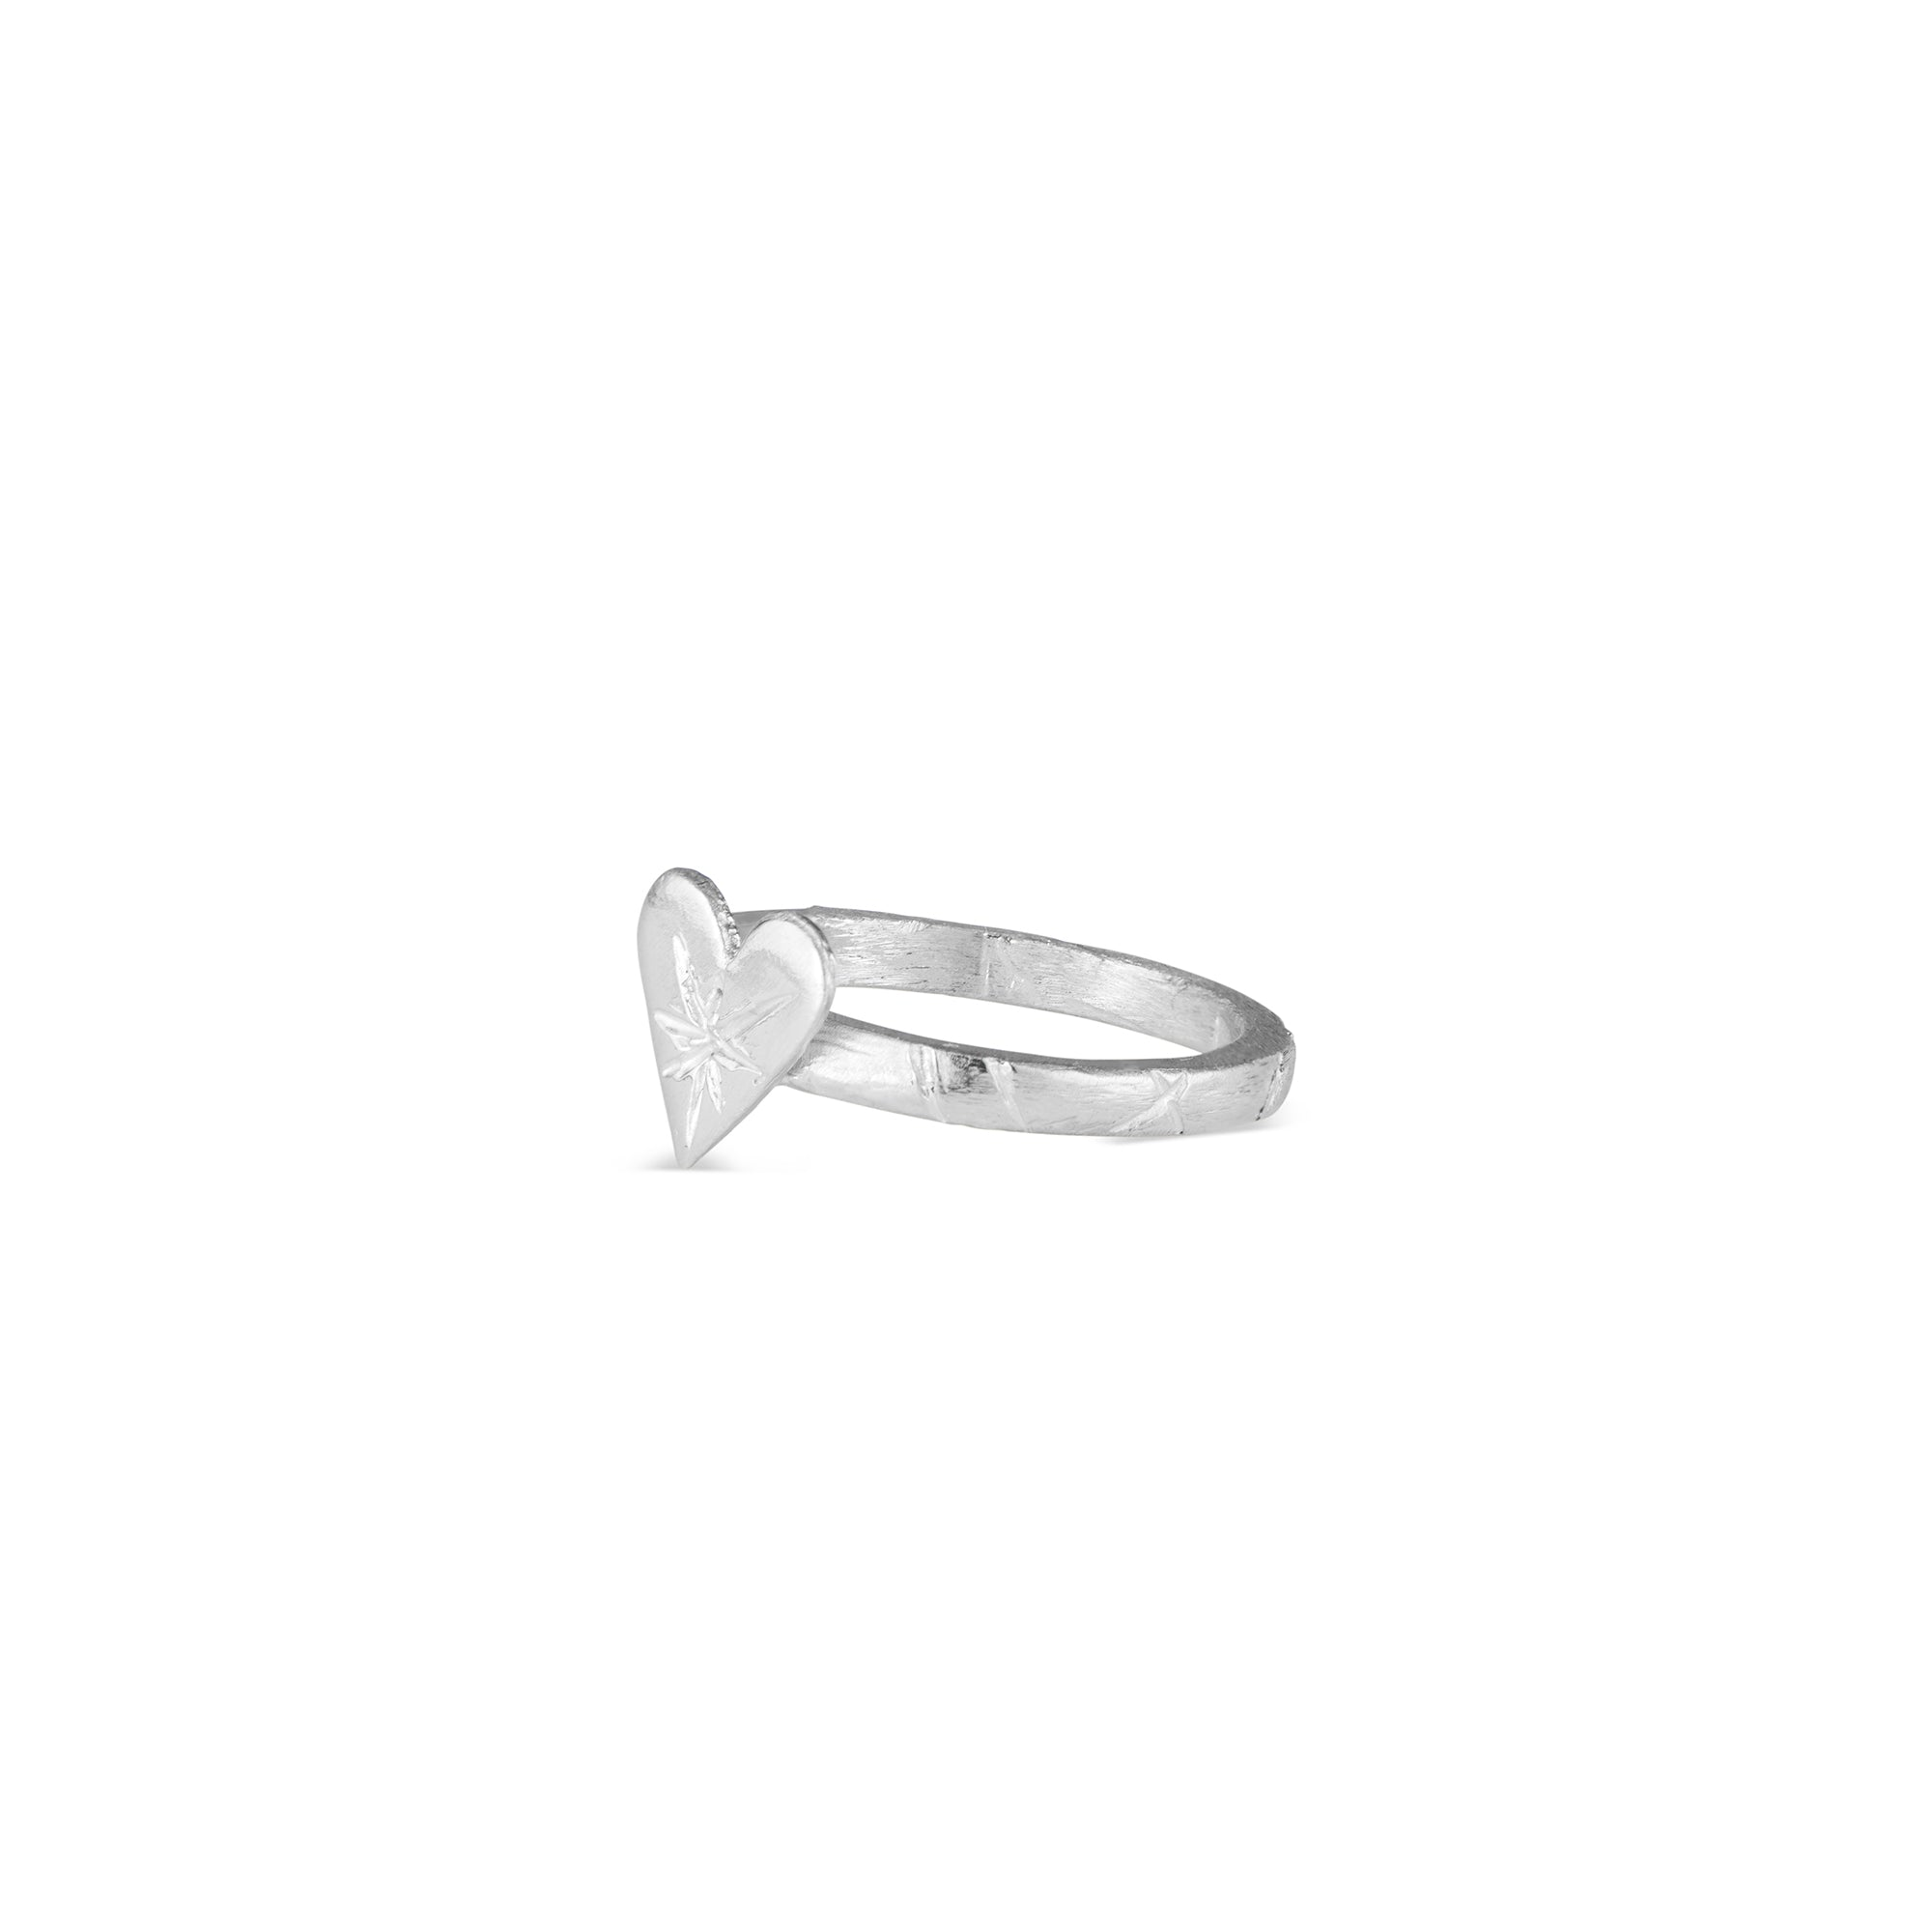 The Natalie McMillan Sterling Silver Harte Ring is best way to add a little LOVE to your jewelry collection!